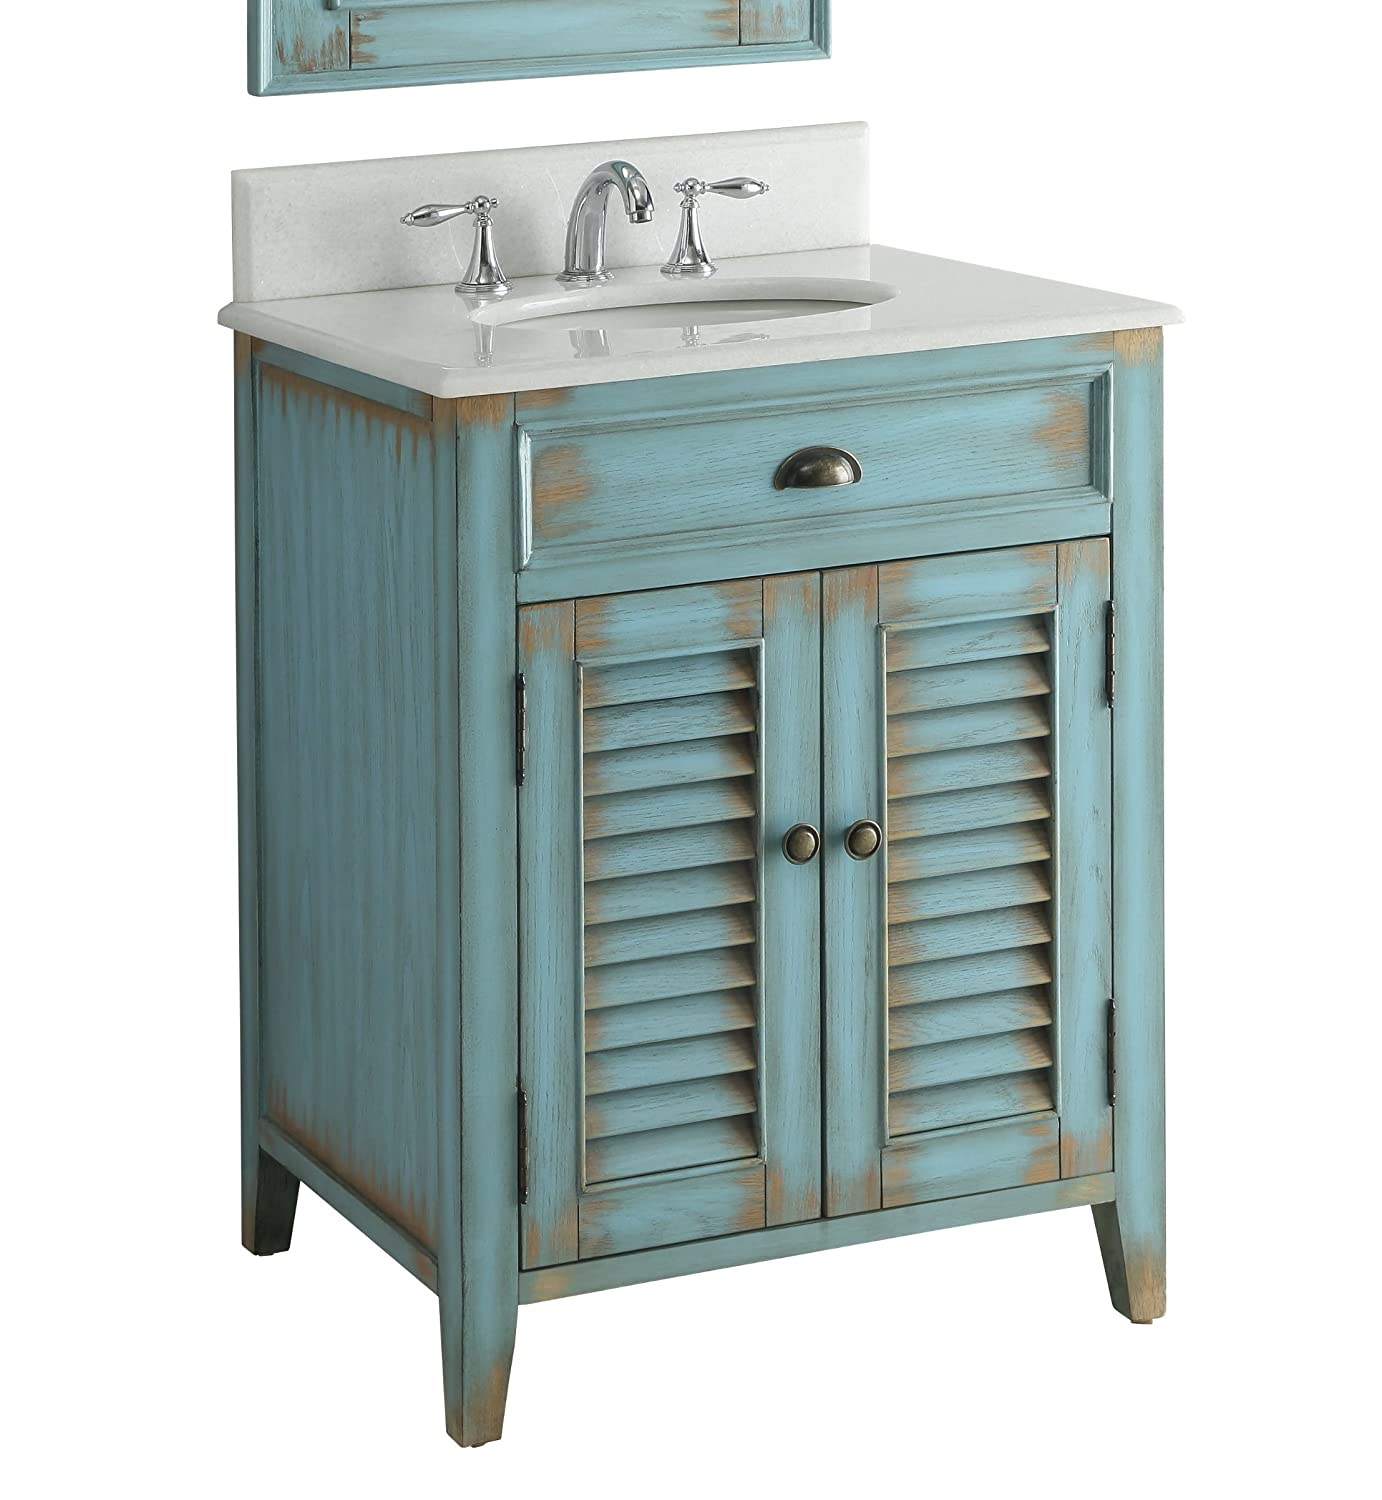 Amazoncom Benton Collection 26 Cottage Look Abbeville Bathroom